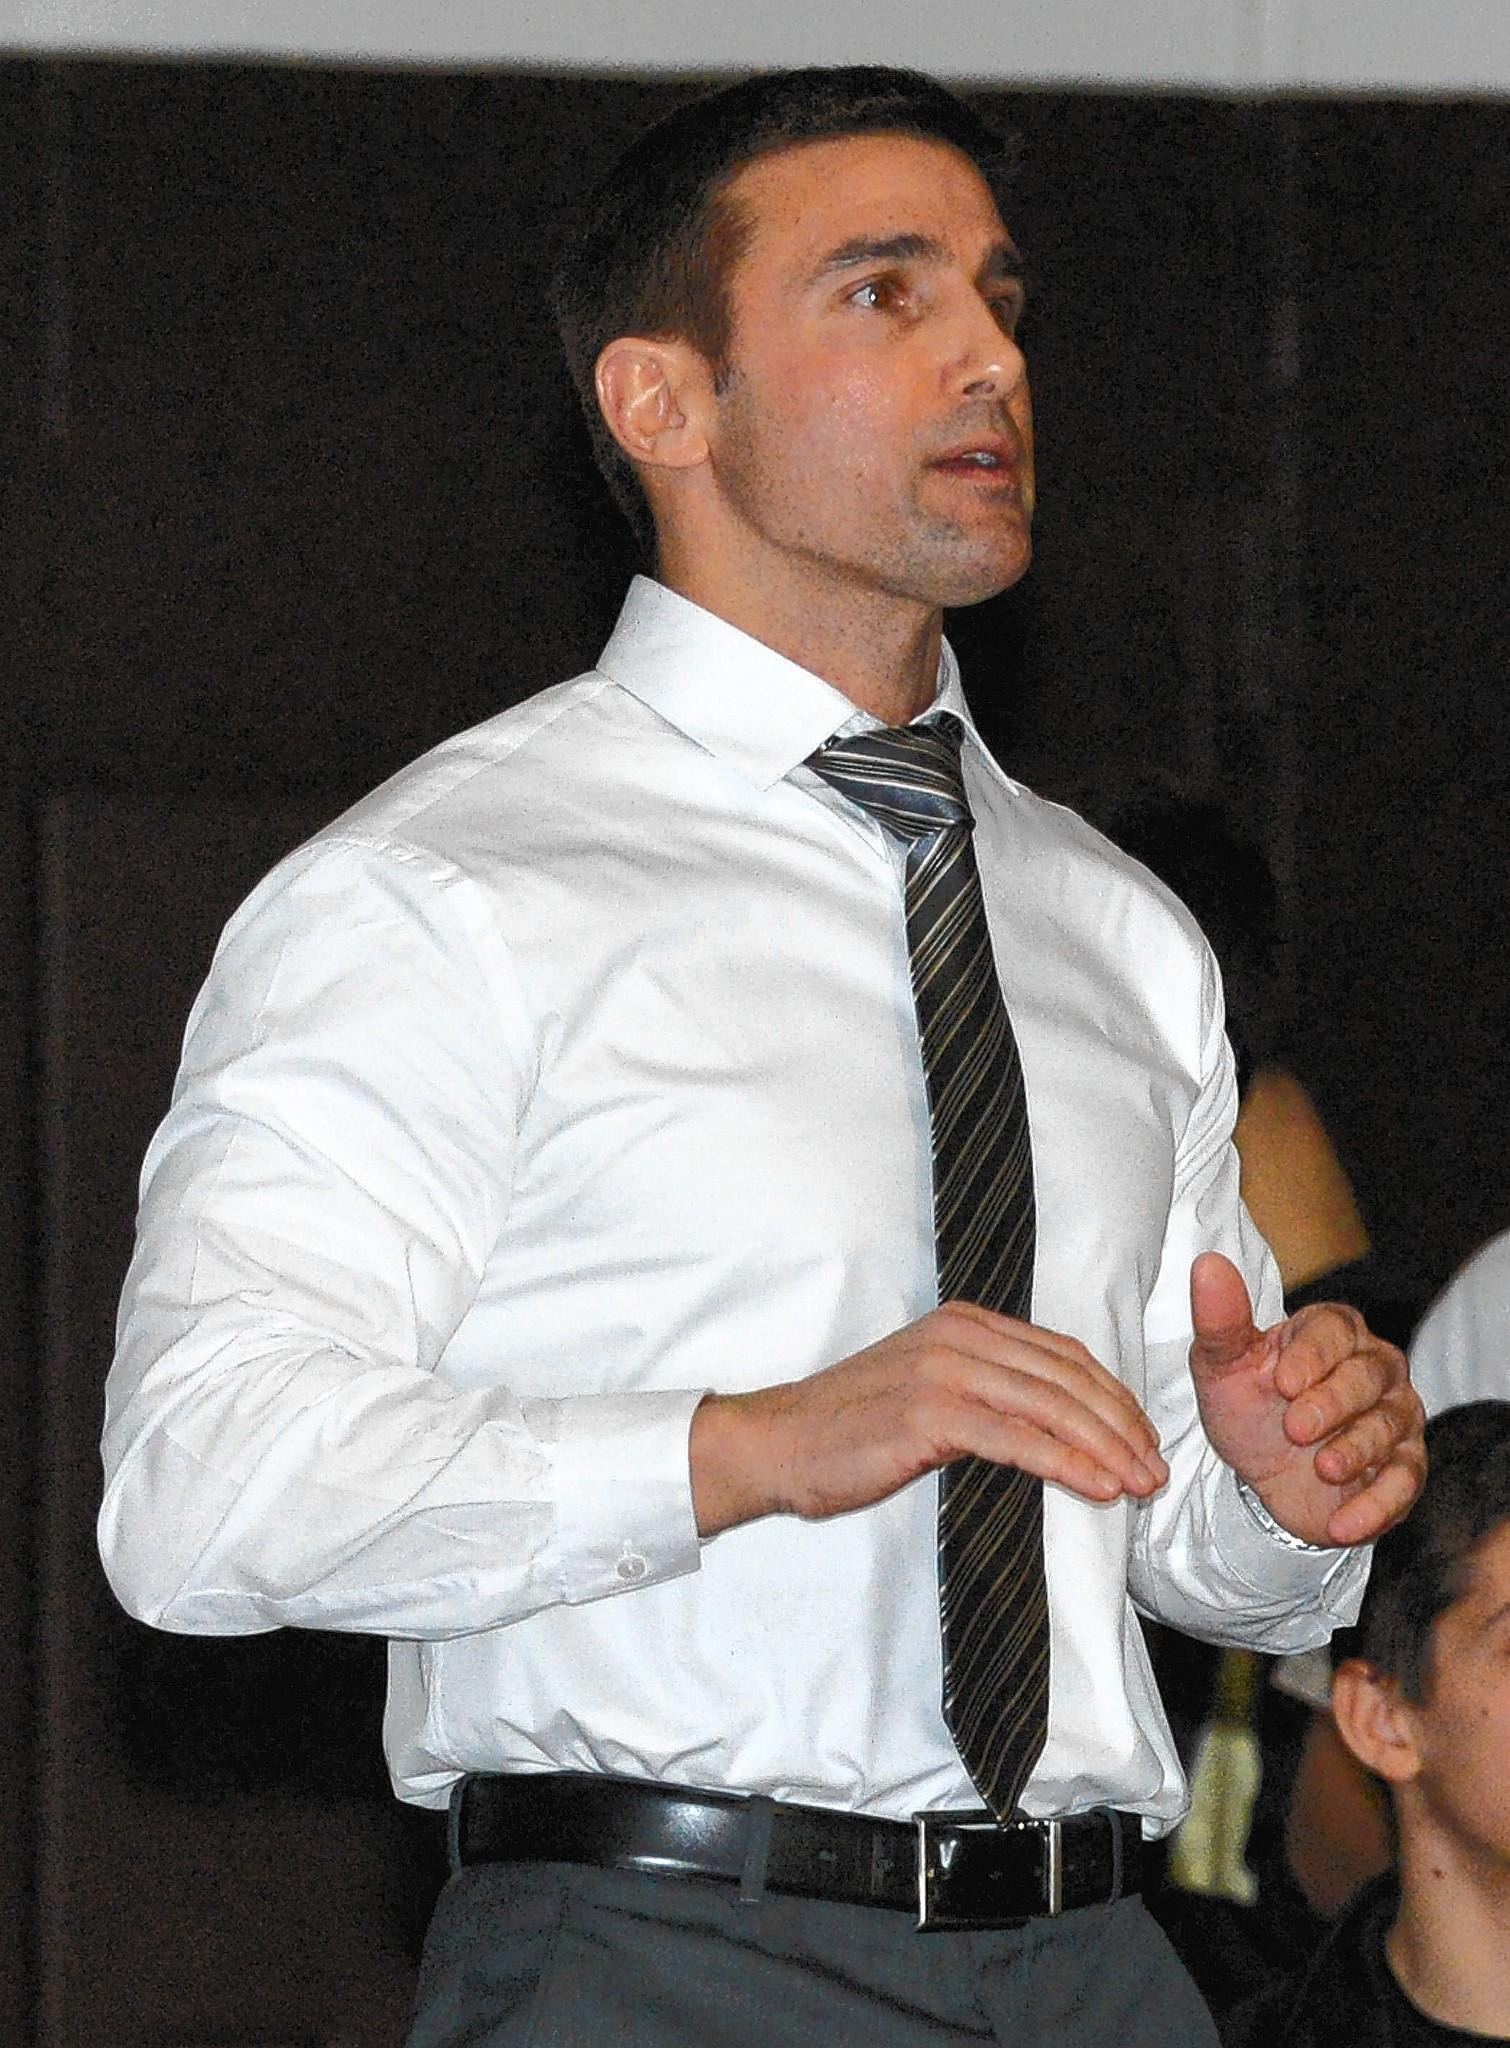 Bethlehem Catholic coach Jeff Karam said he doesn't understand the decision by Palisades coach Omar Porrata to forfeit all 14 matches in the District 11 Class 2A team tournament.